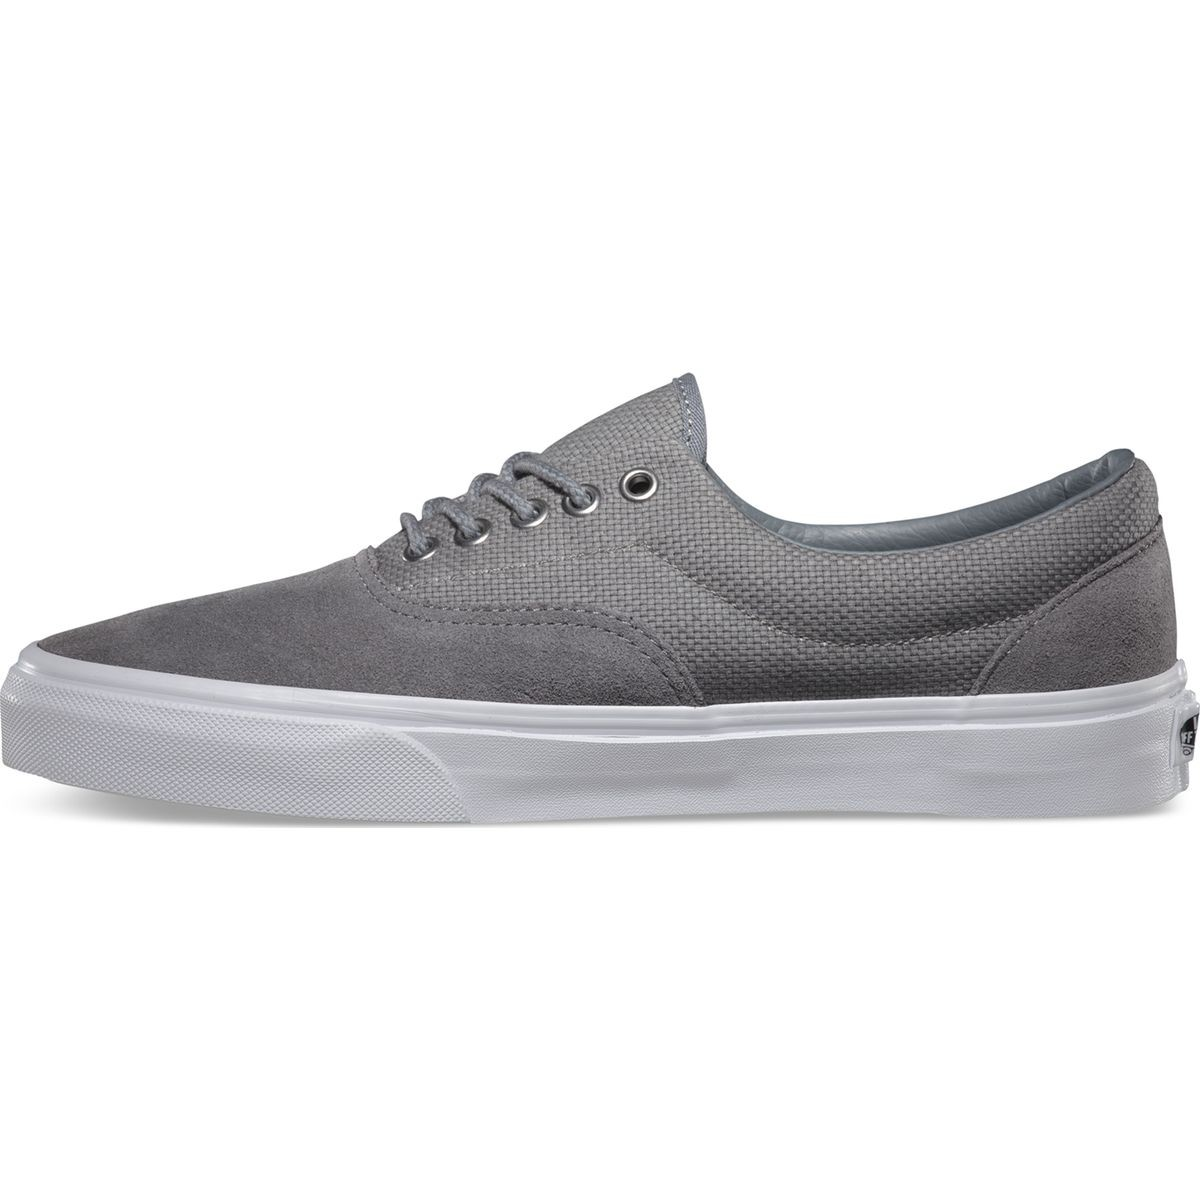 Vans Era Hemp Shoes - Monument True White - 8.0 5773314f06